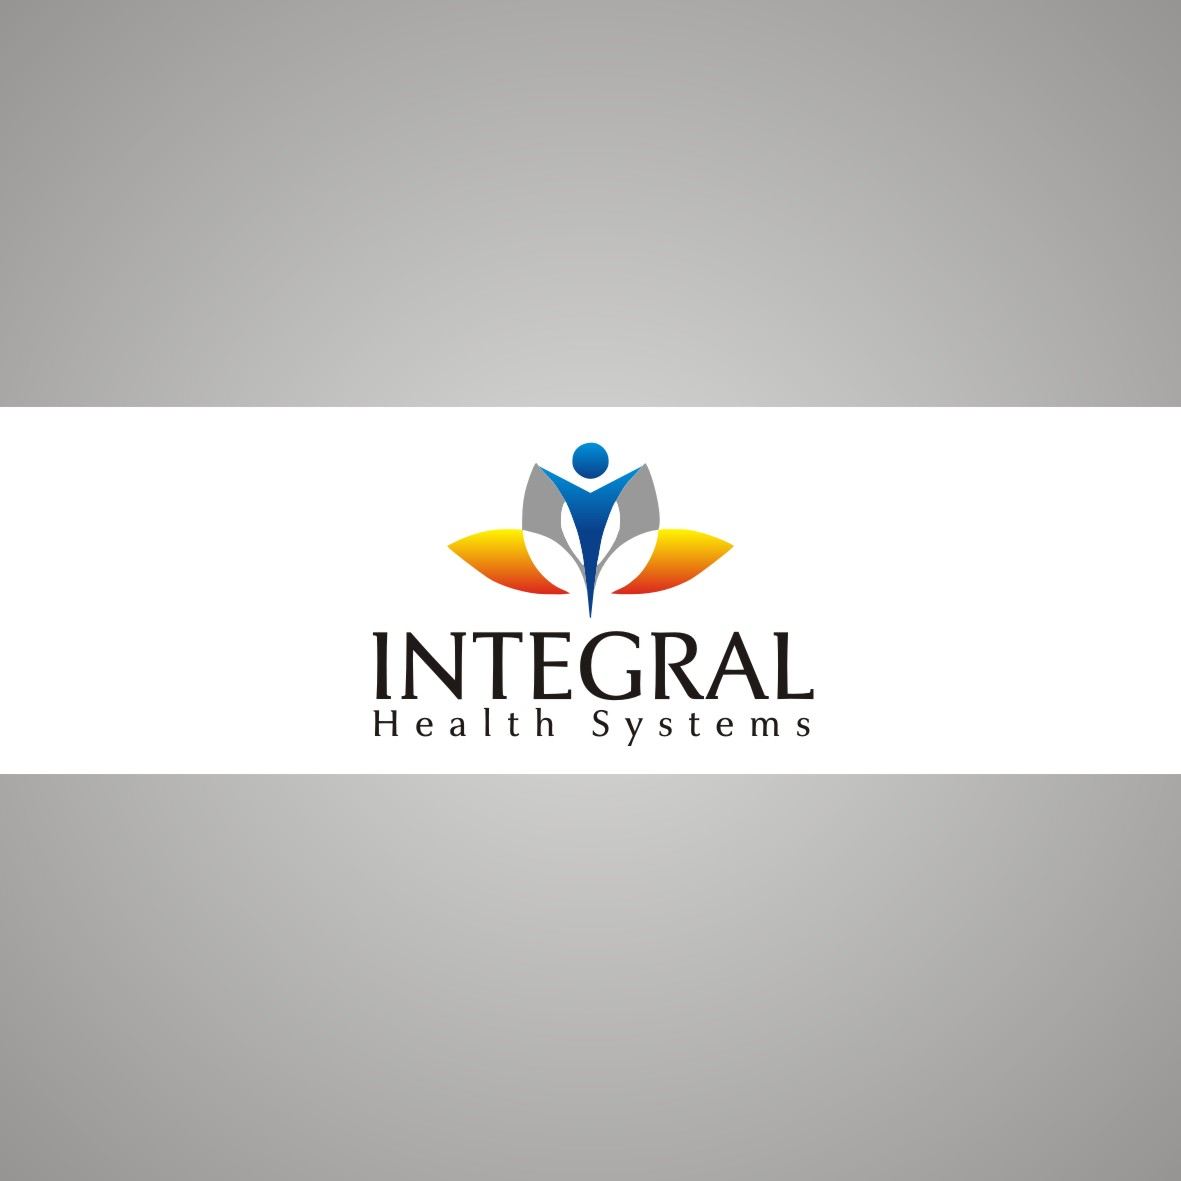 Logo Design by arteo_design - Entry No. 86 in the Logo Design Contest Unique Logo Design Wanted for Integral Health Systems.